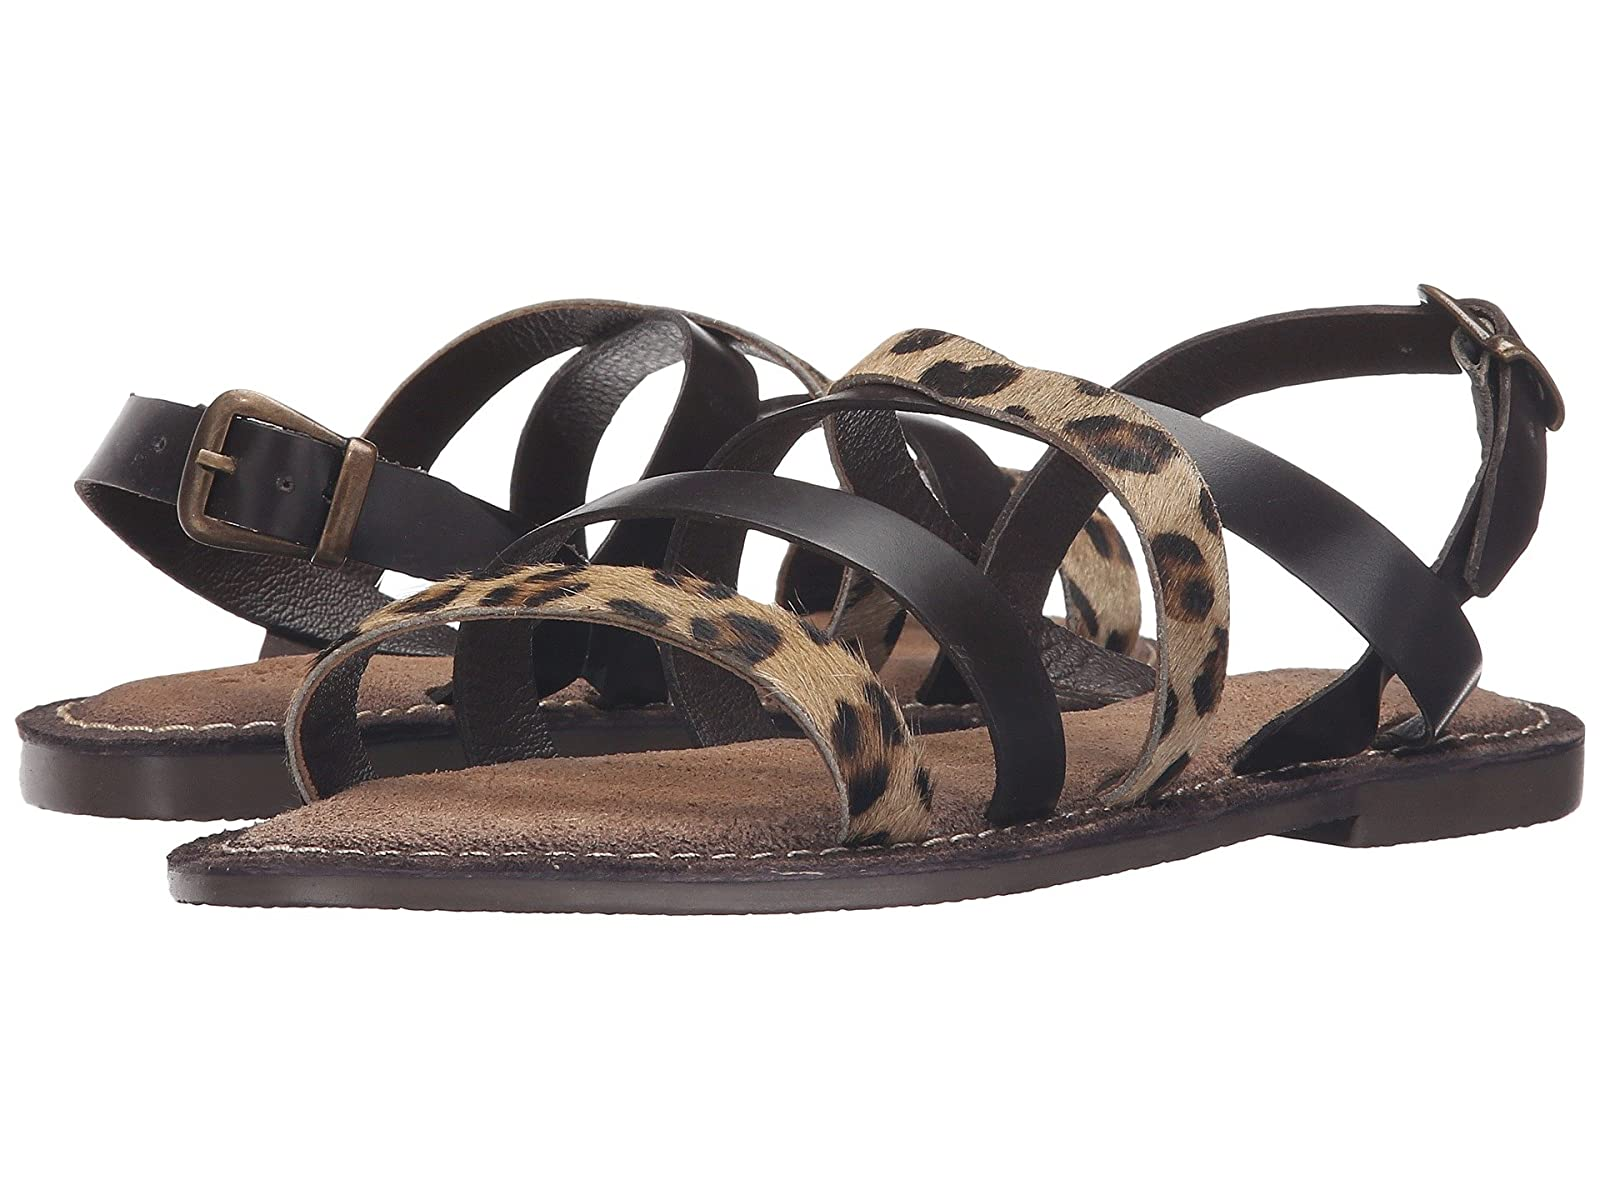 Seychelles OnwardCheap and distinctive eye-catching shoes